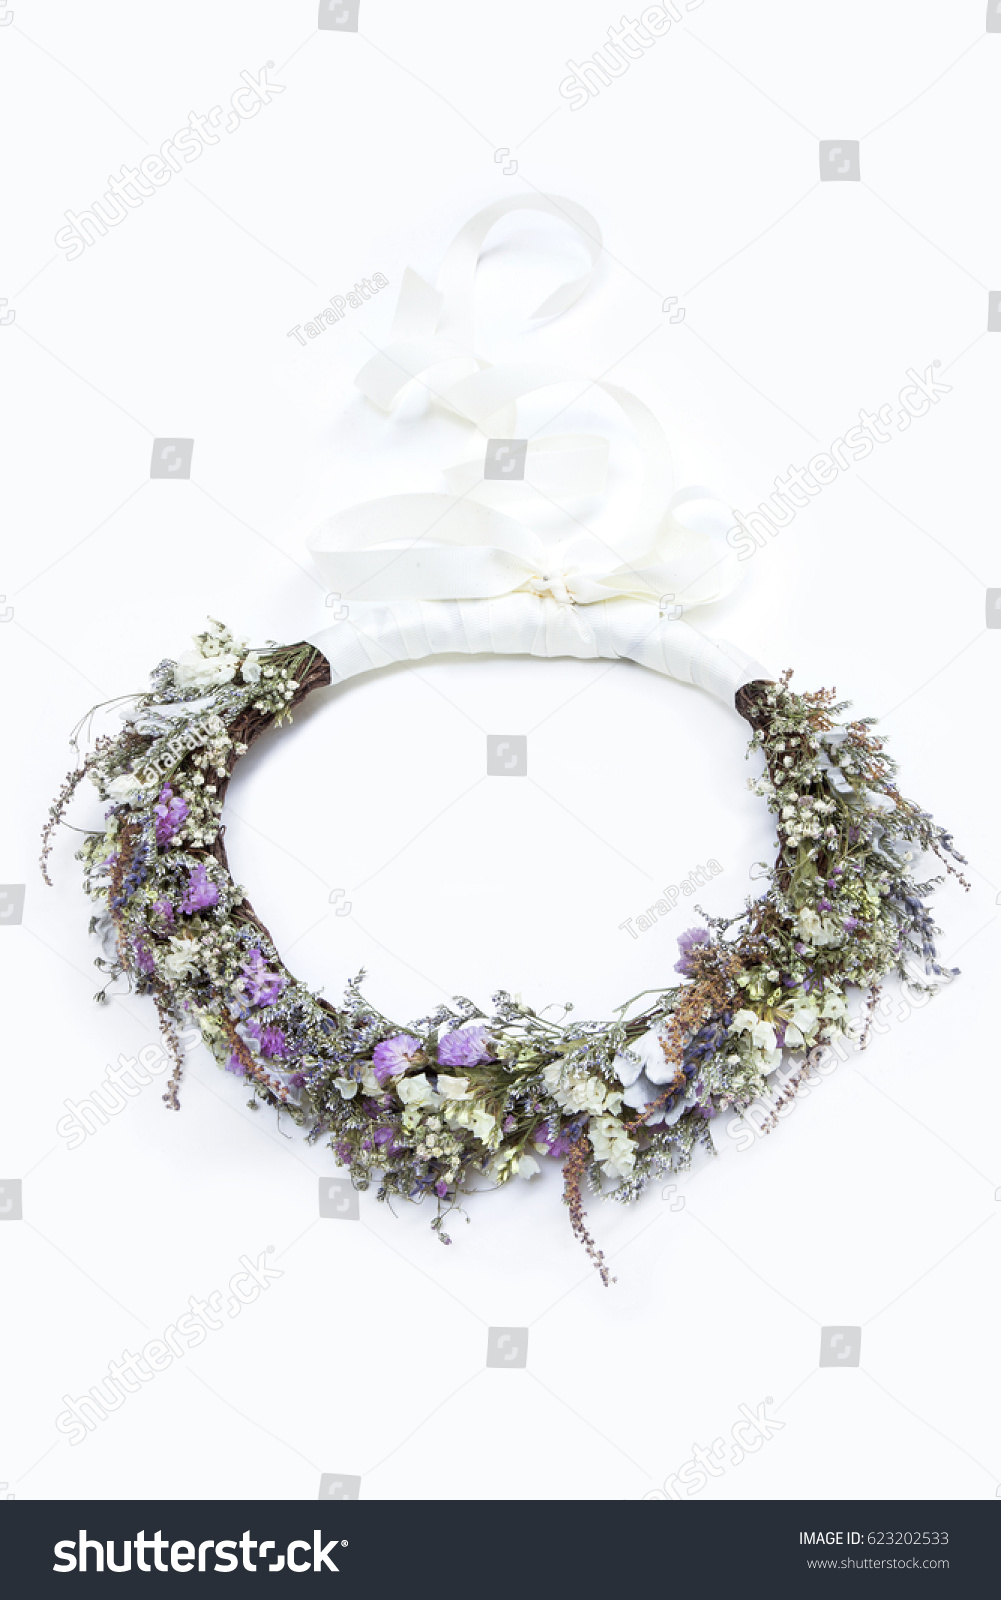 Dried Flower Crown Headband White Ribbon Stock Photo Edit Now